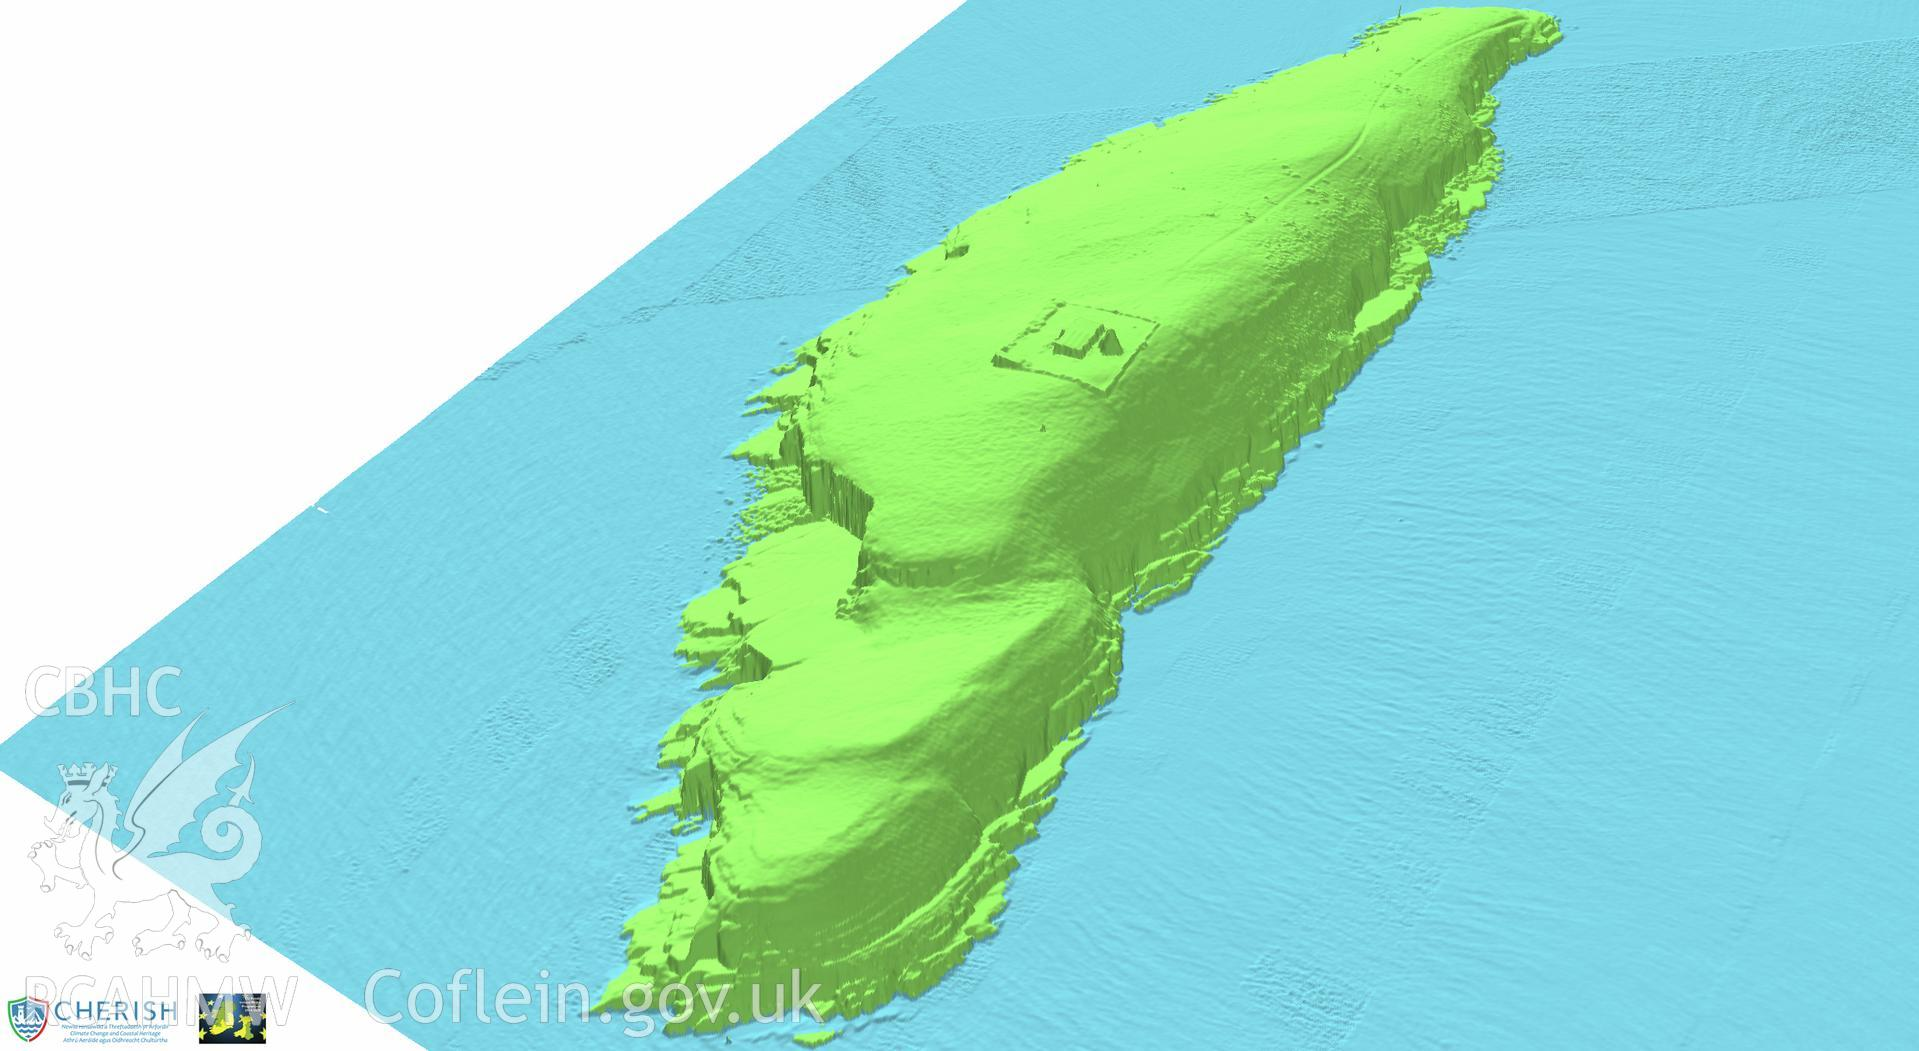 Ynysoedd Tudwal (St. Tudwal?s Islands). Airborne laser scanning (LiDAR) commissioned by the CHERISH Project 2017-2021, flown by Bluesky International LTD at low tide on 24th February 2017. View showing both islands from the north-east.